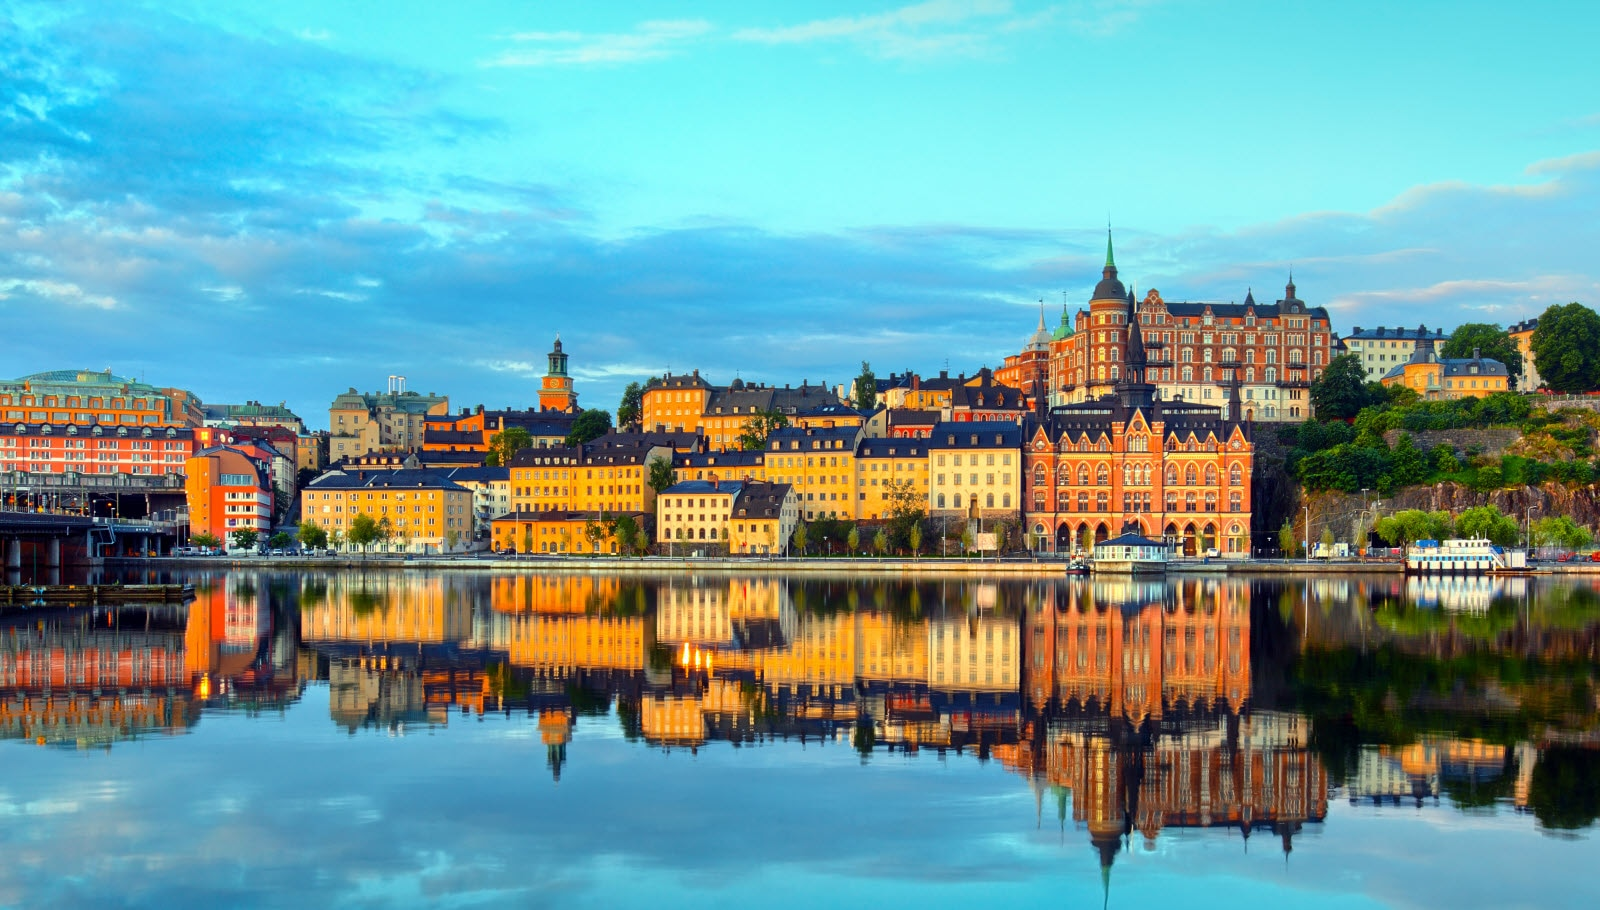 Stockholm early summer morning